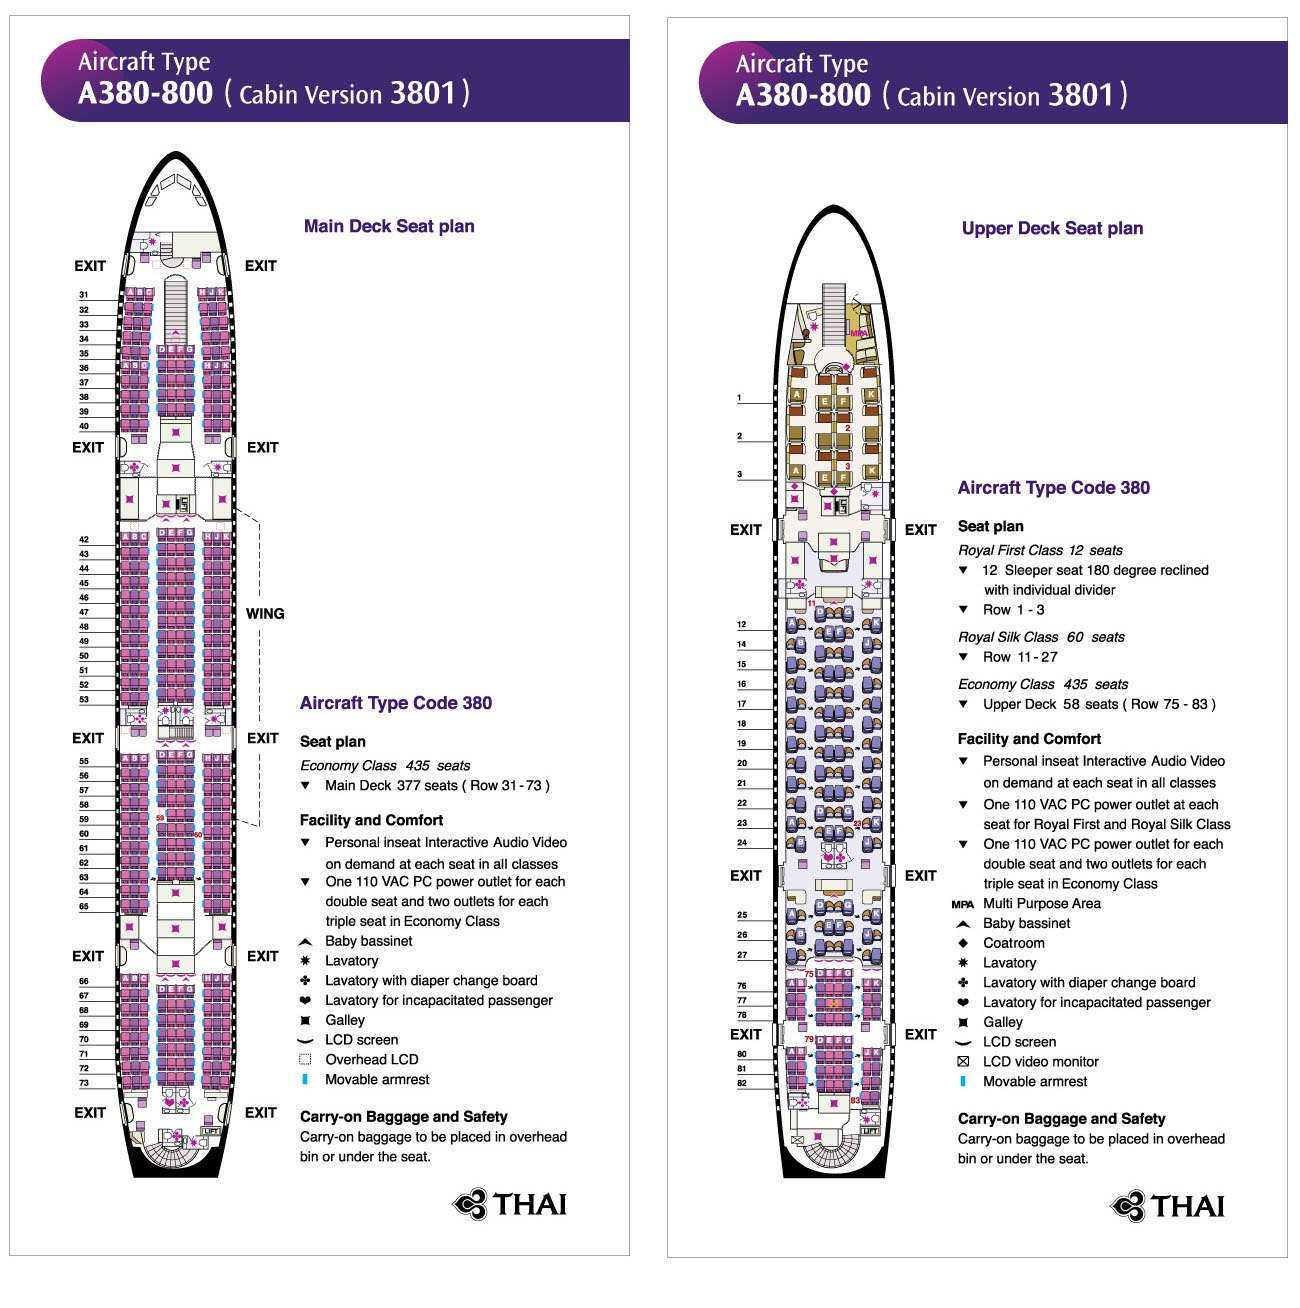 Thai Airways A380-800 Cabin Seating Plan